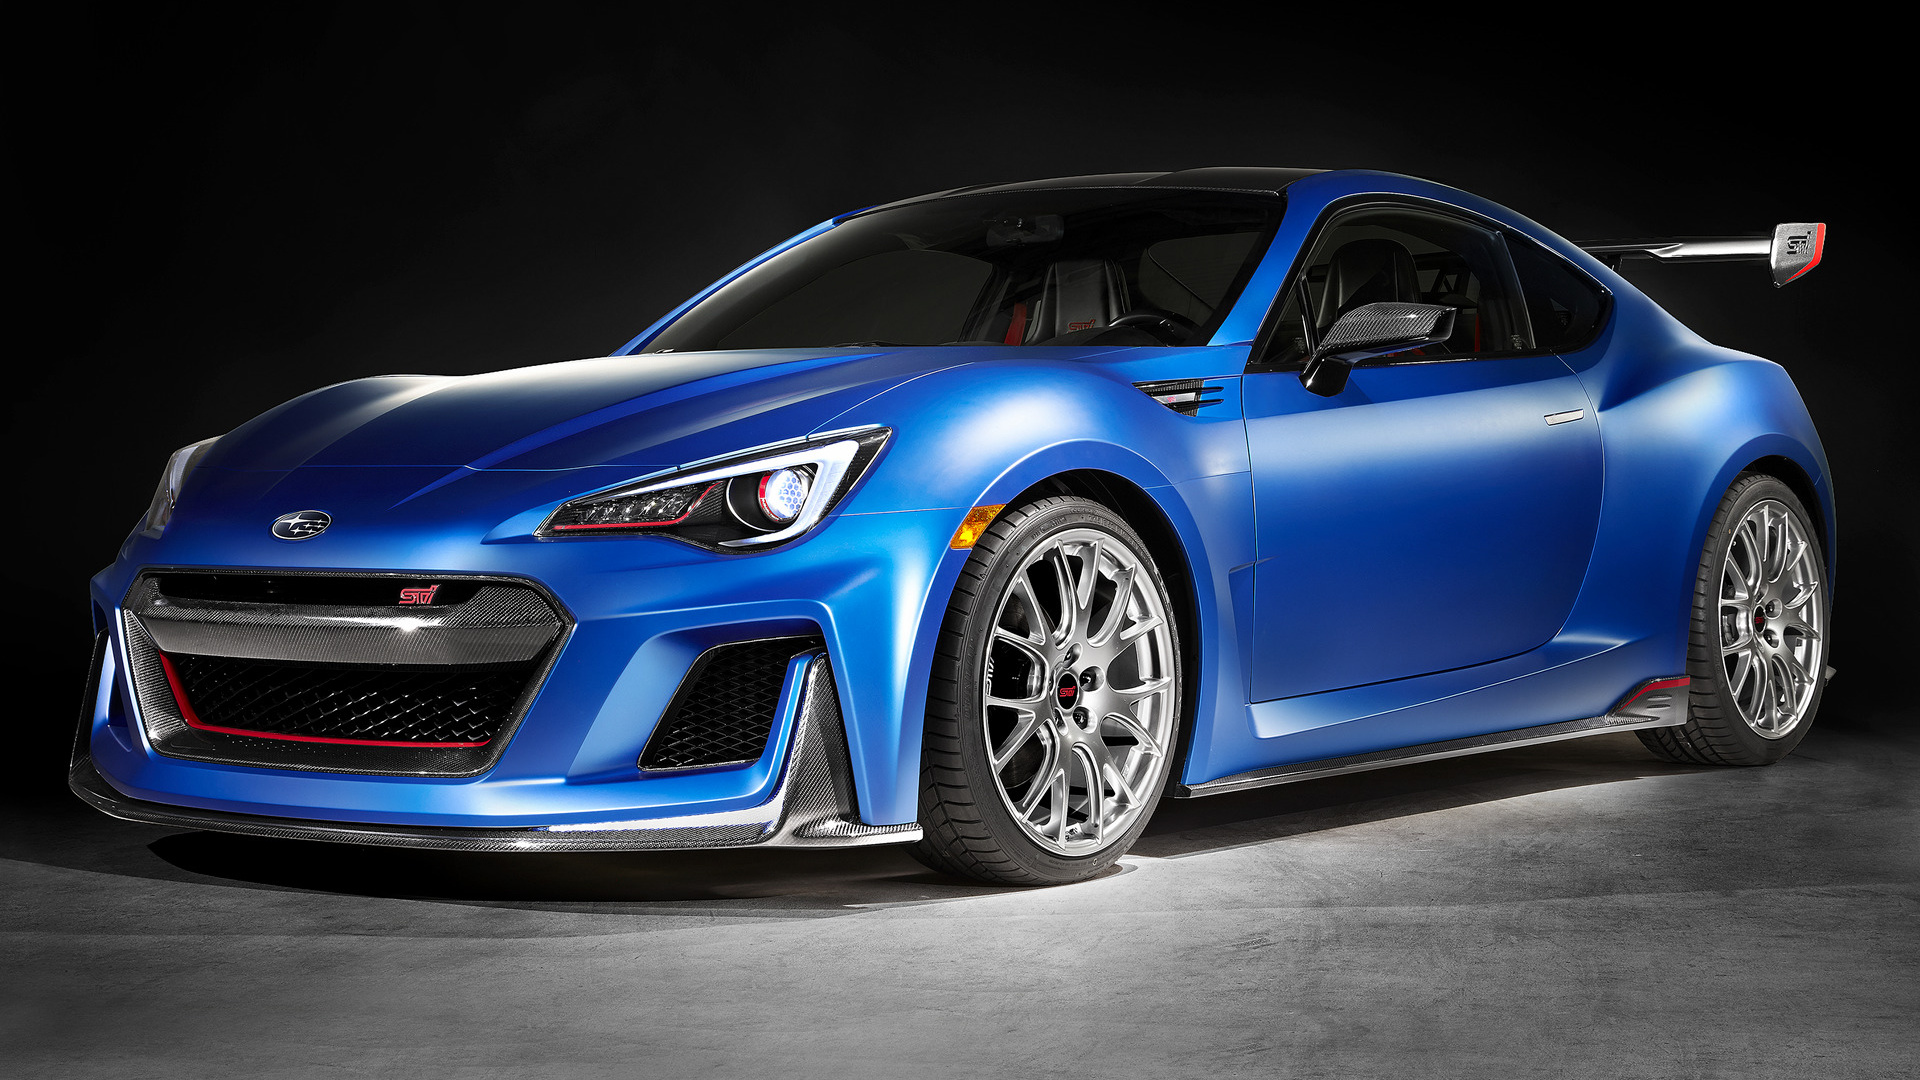 2015 Subaru BRZ STI Performance Concept - Wallpapers And HD Images